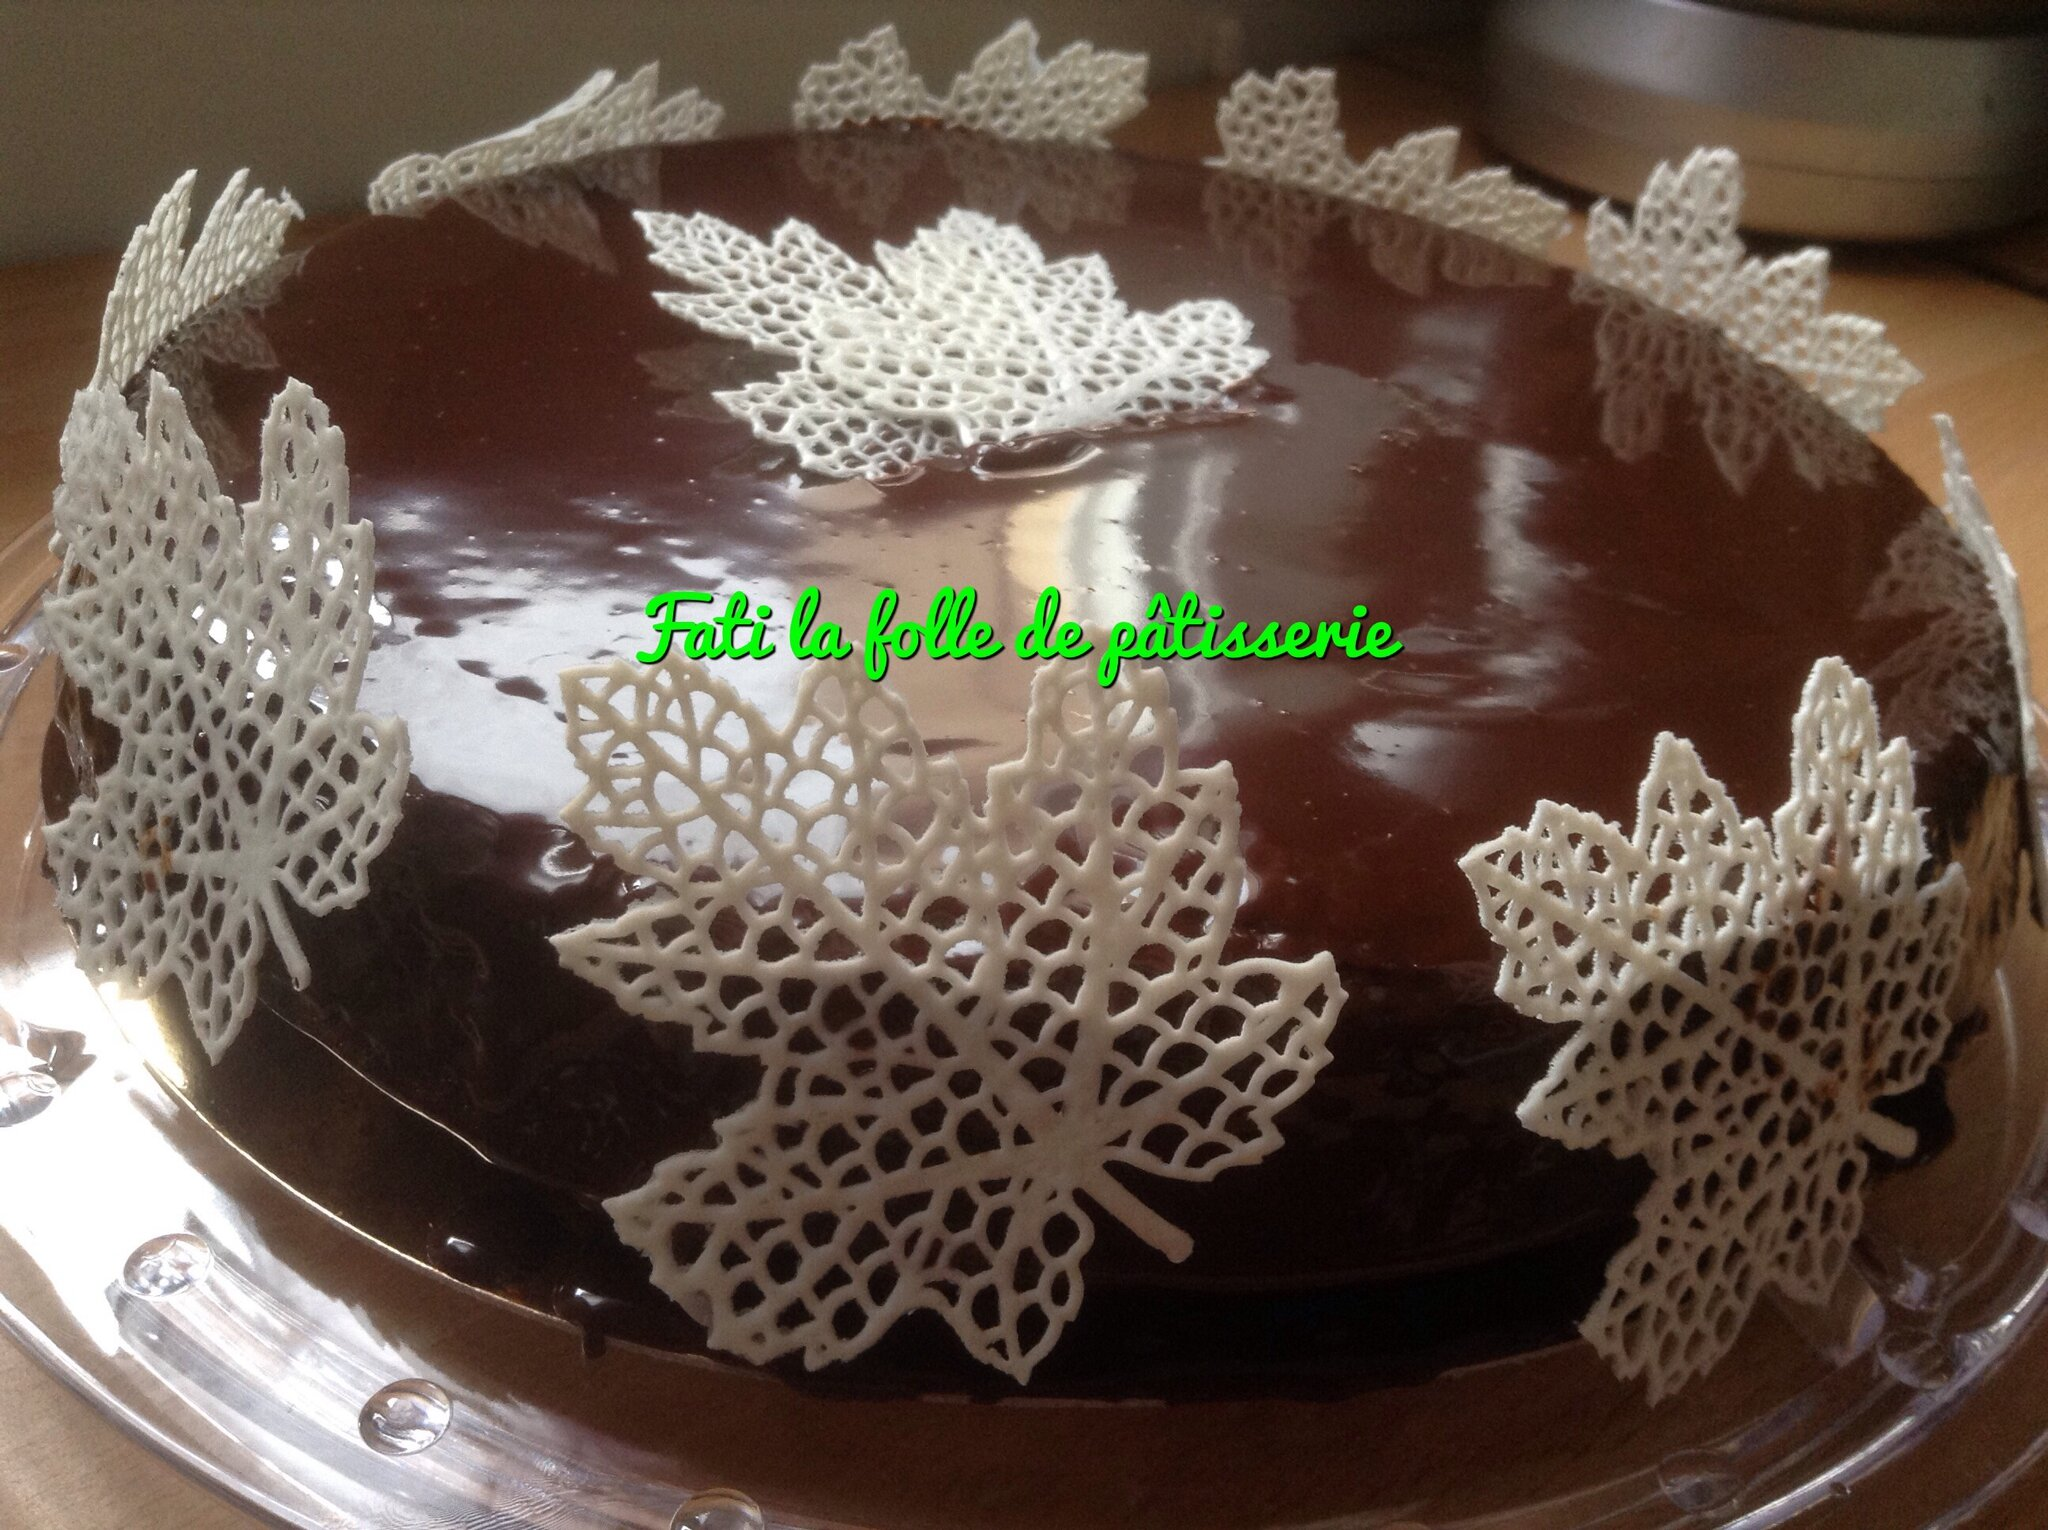 Decoration Gateau Anniversaire Chocolat : Decoration gateau chocolat simple